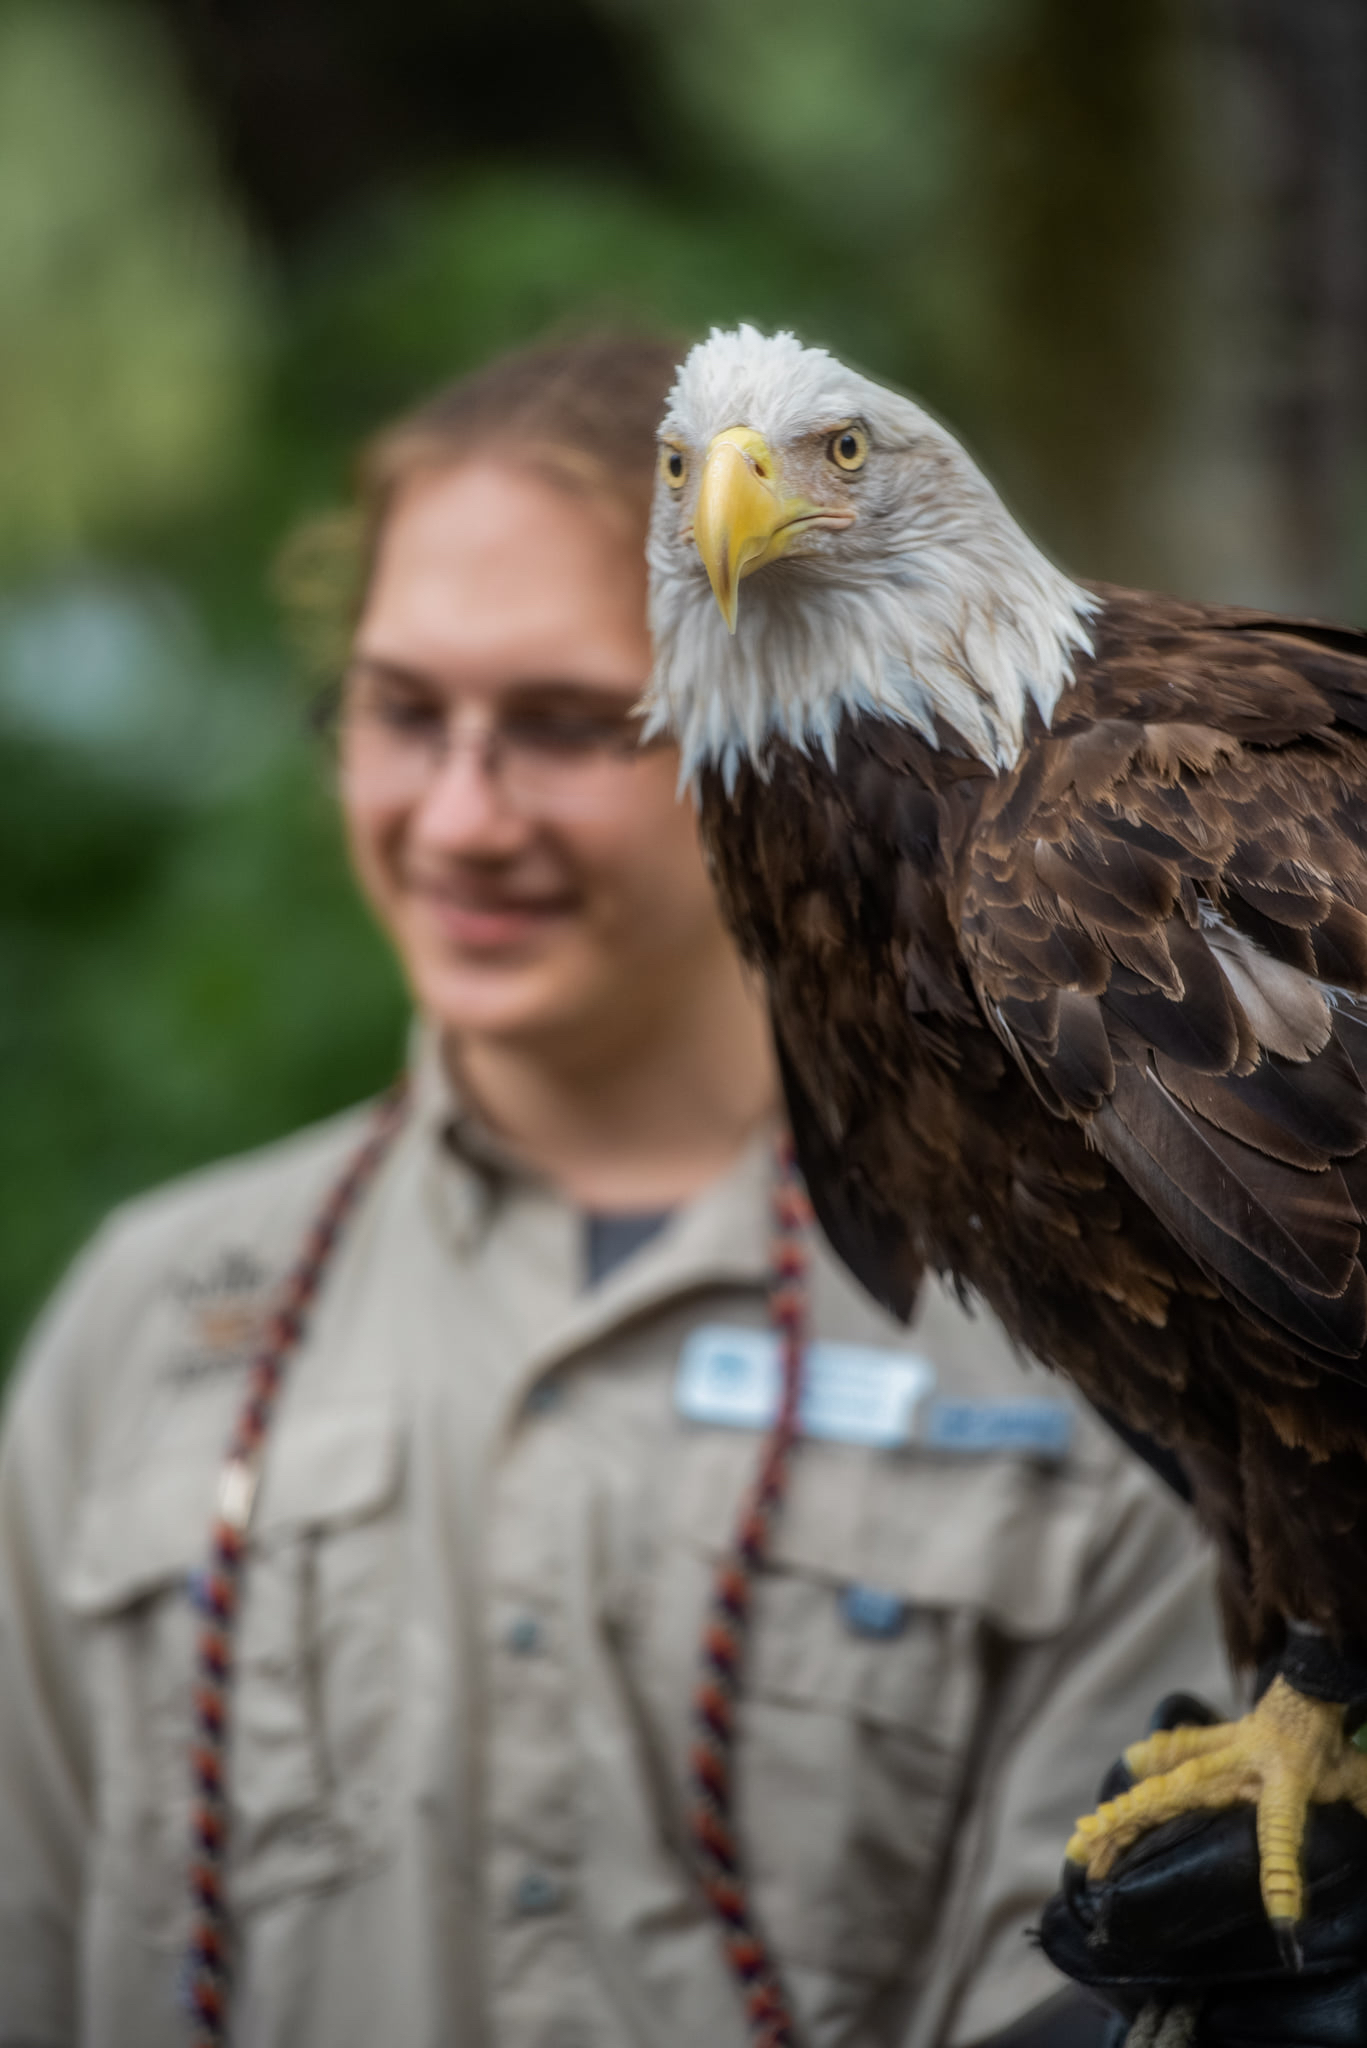 Abald eagle in the foreground with a handler blurred in the background